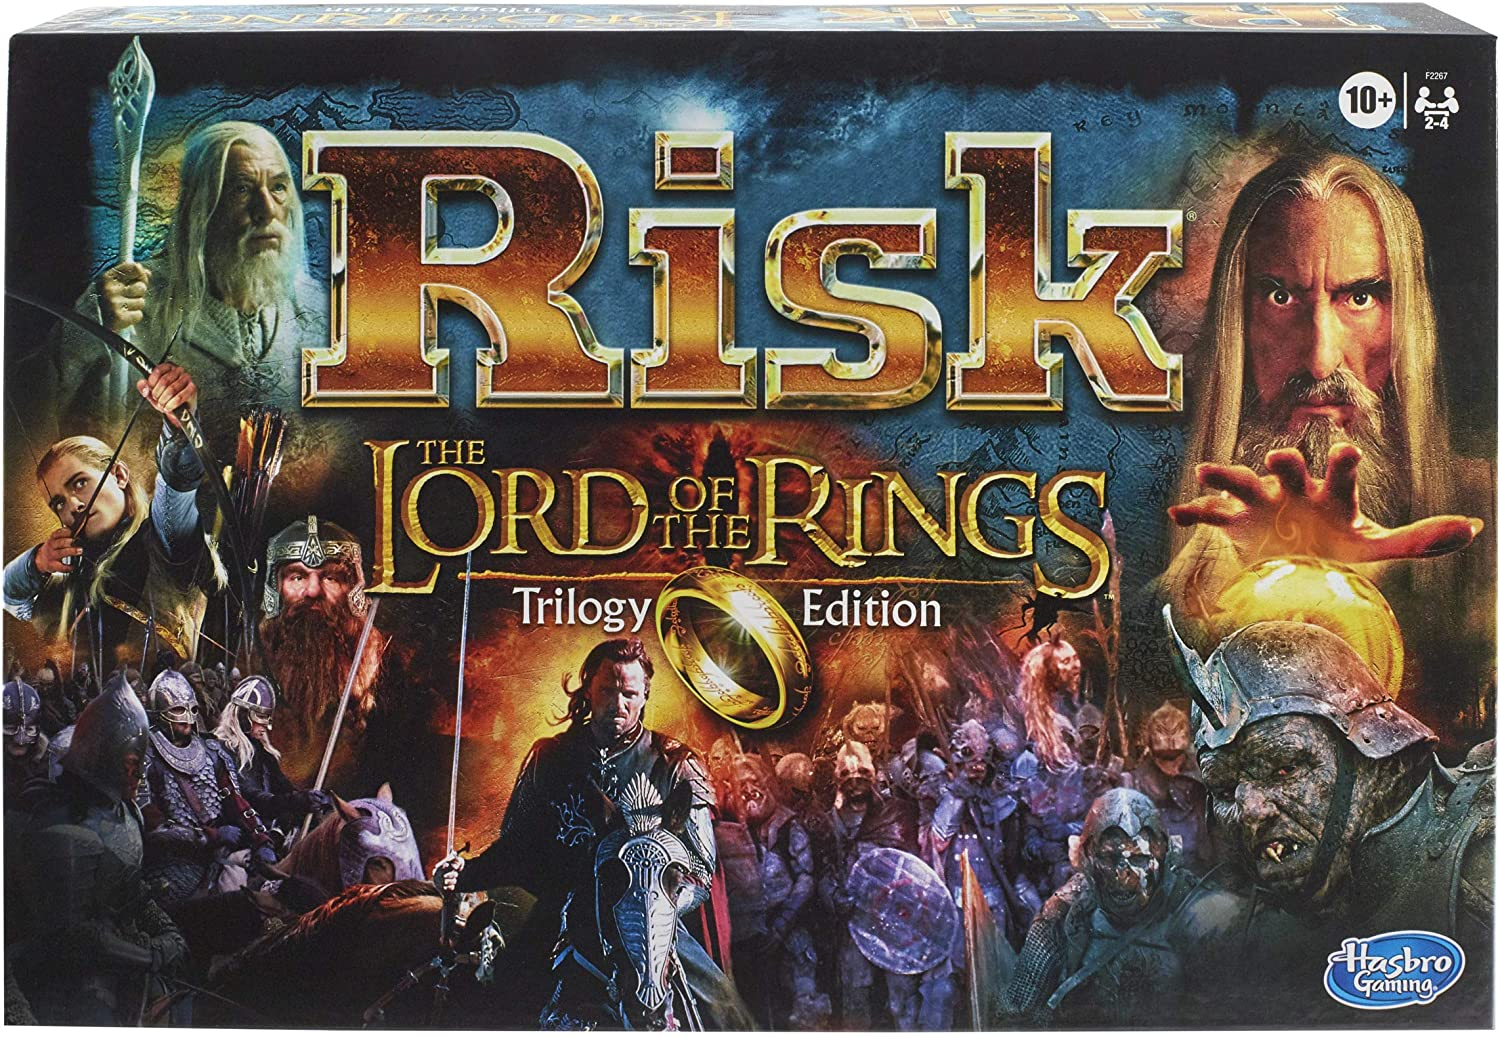 Safety and trust Hasbro Gaming Risk: The SALENEW very popular! Lord Rings Trilogy Strat Edition of